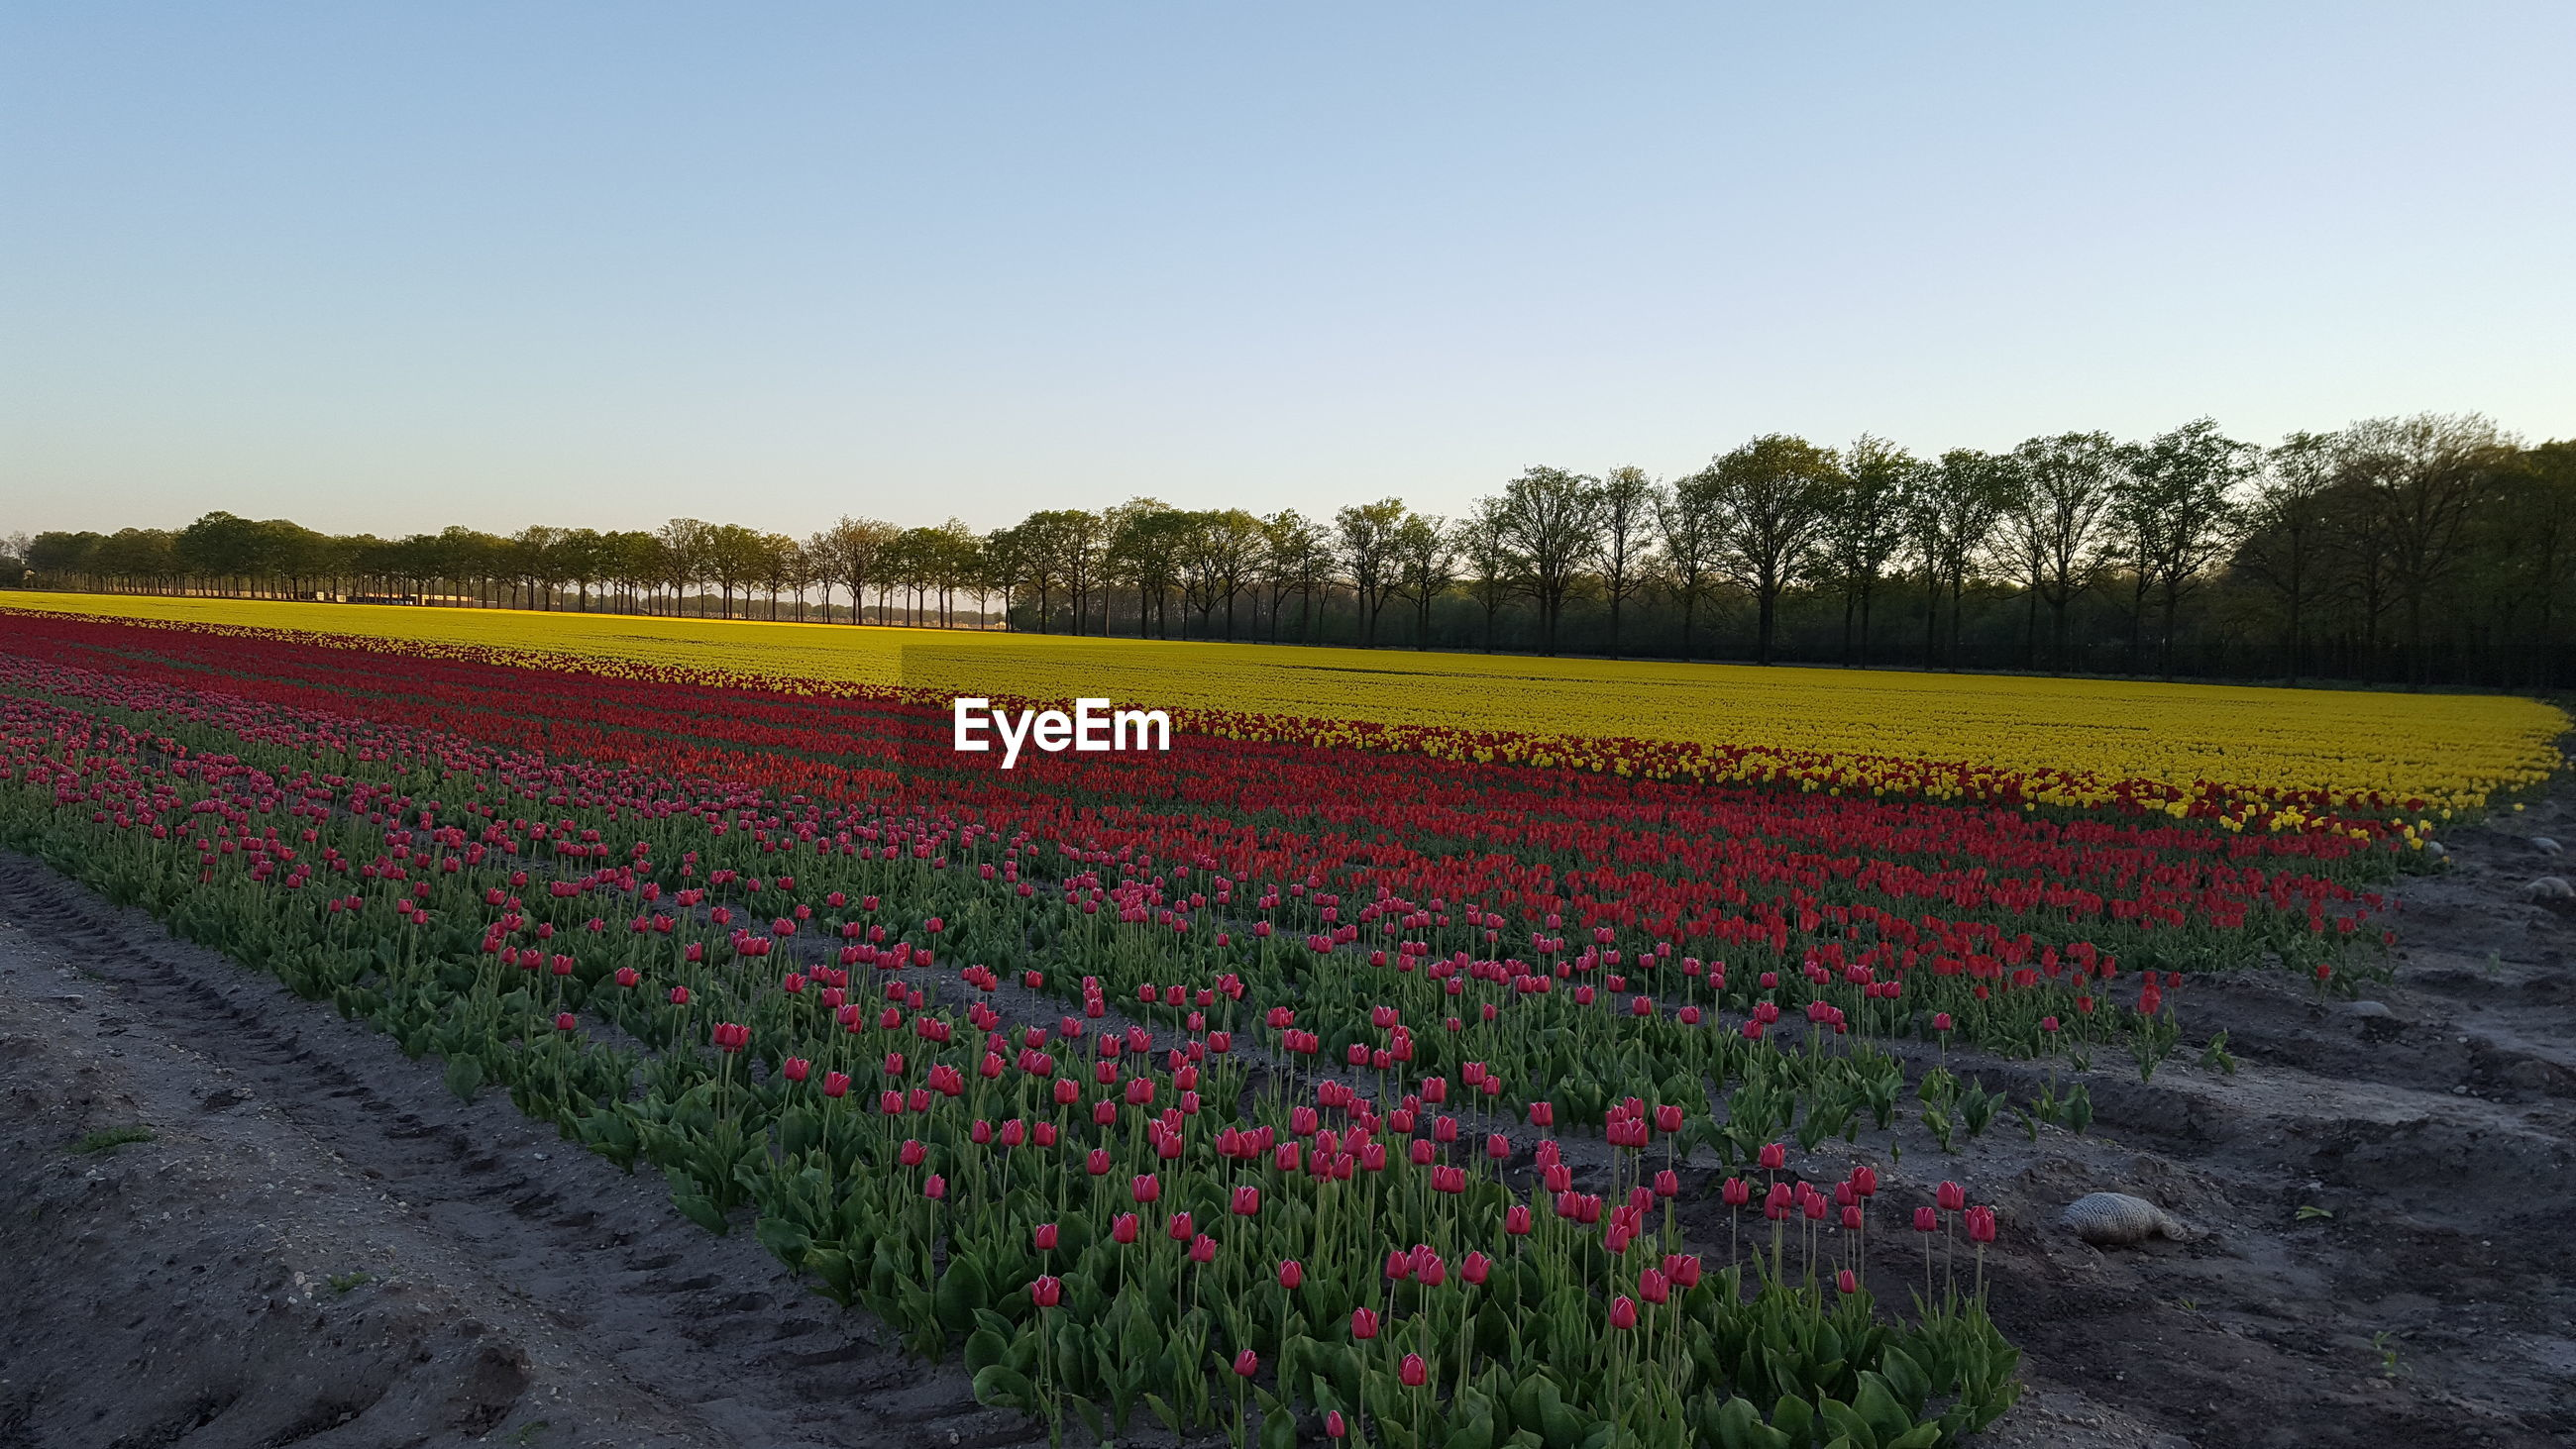 SCENIC VIEW OF FLOWERING PLANTS AGAINST CLEAR SKY